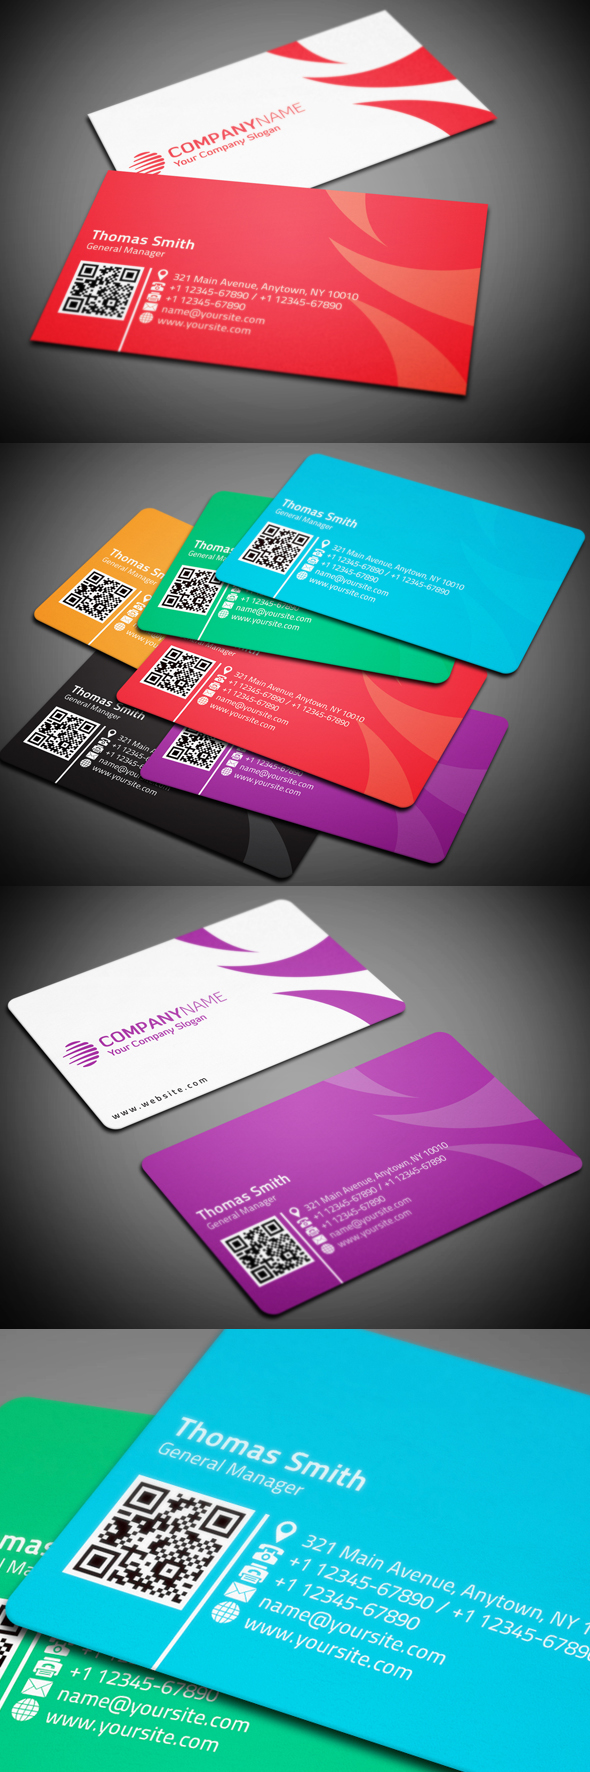 Corporate Business Card on Behance